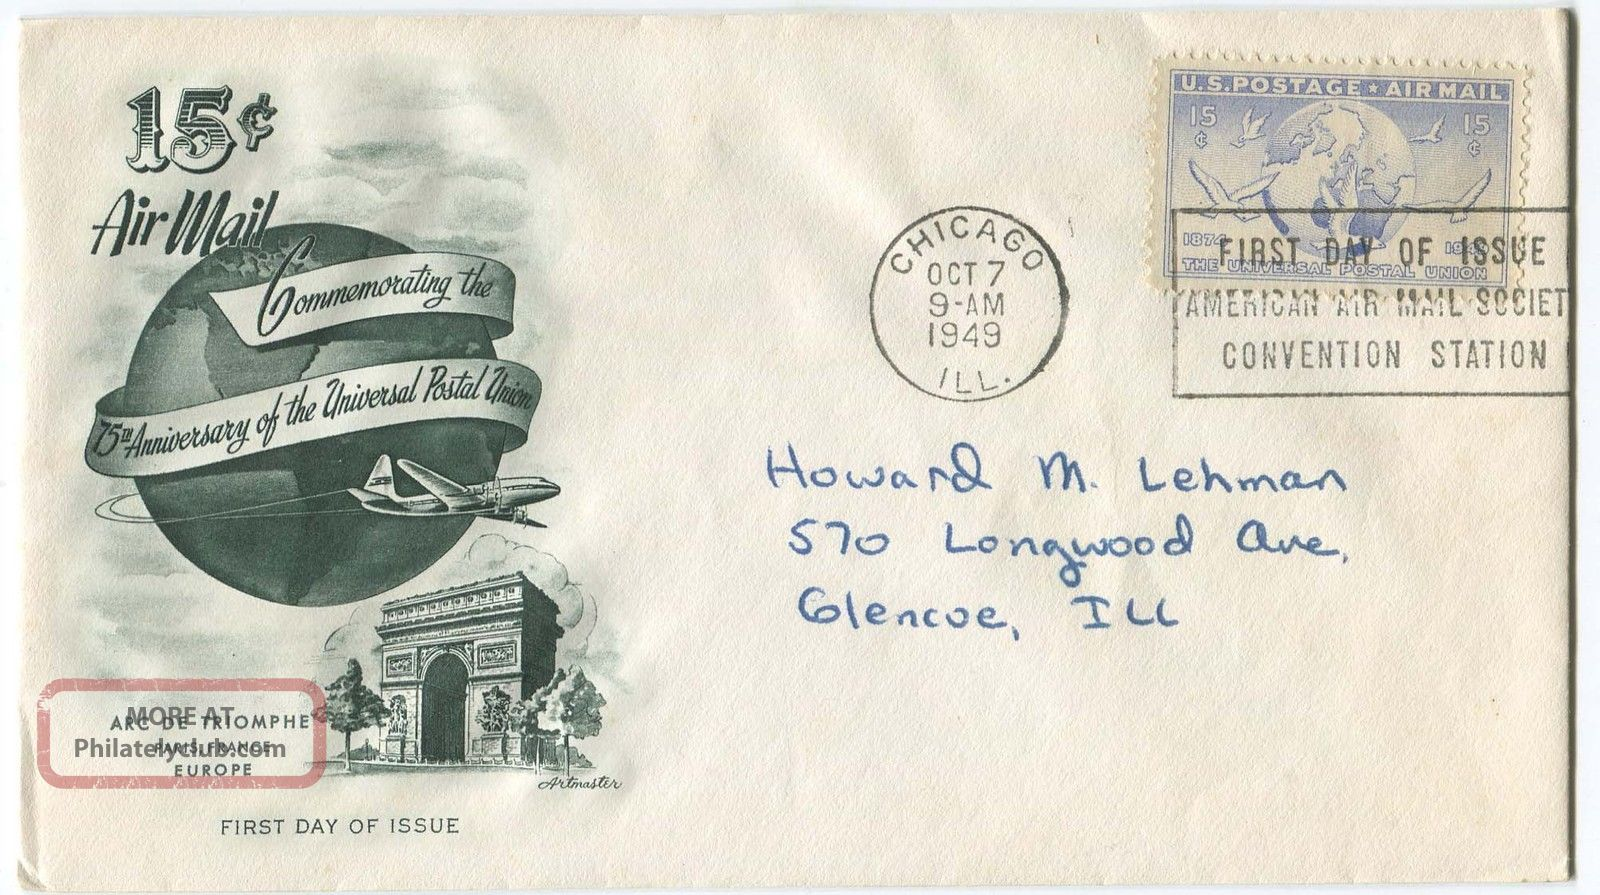 Usa First Day Cover Commemoration The United Postal Union FDCs (pre-1951) photo